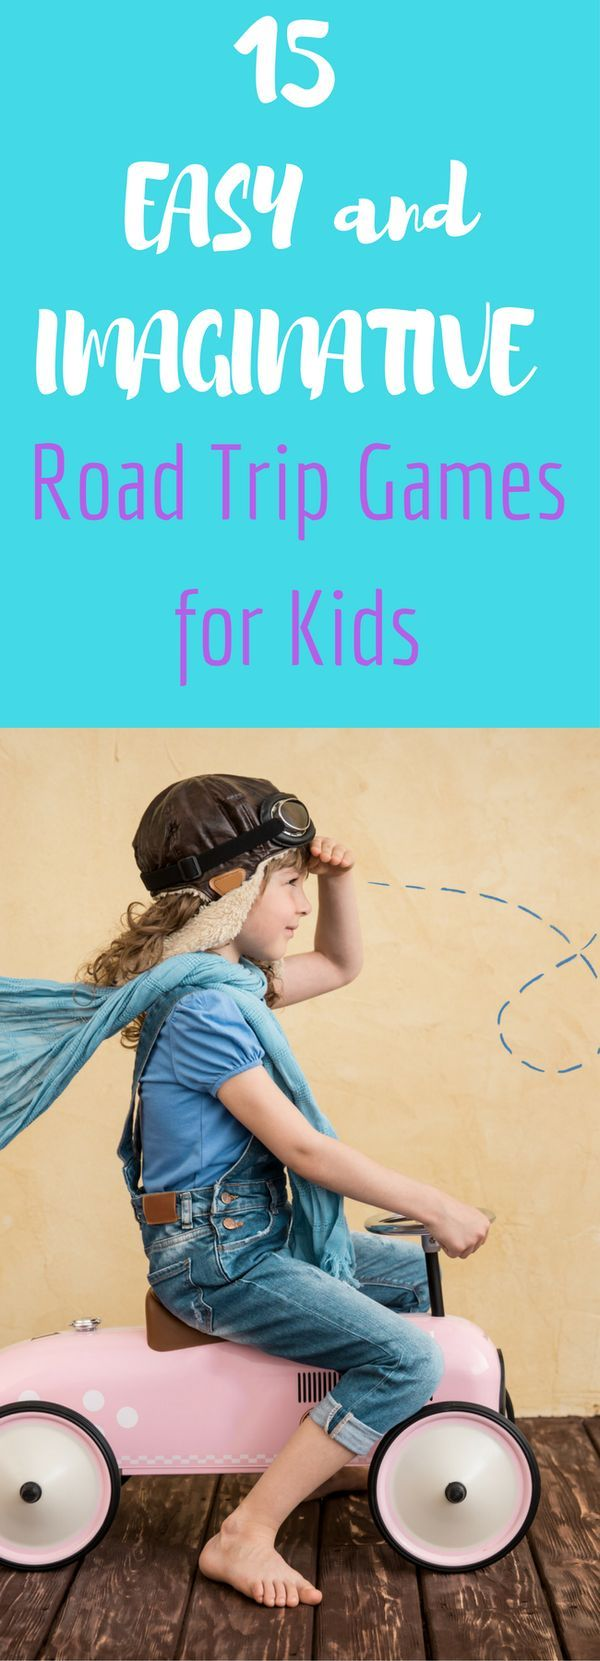 If you're going on a road trip with your kid(s), then you'll want to use these tips for some fun and easy games the whole family can play!